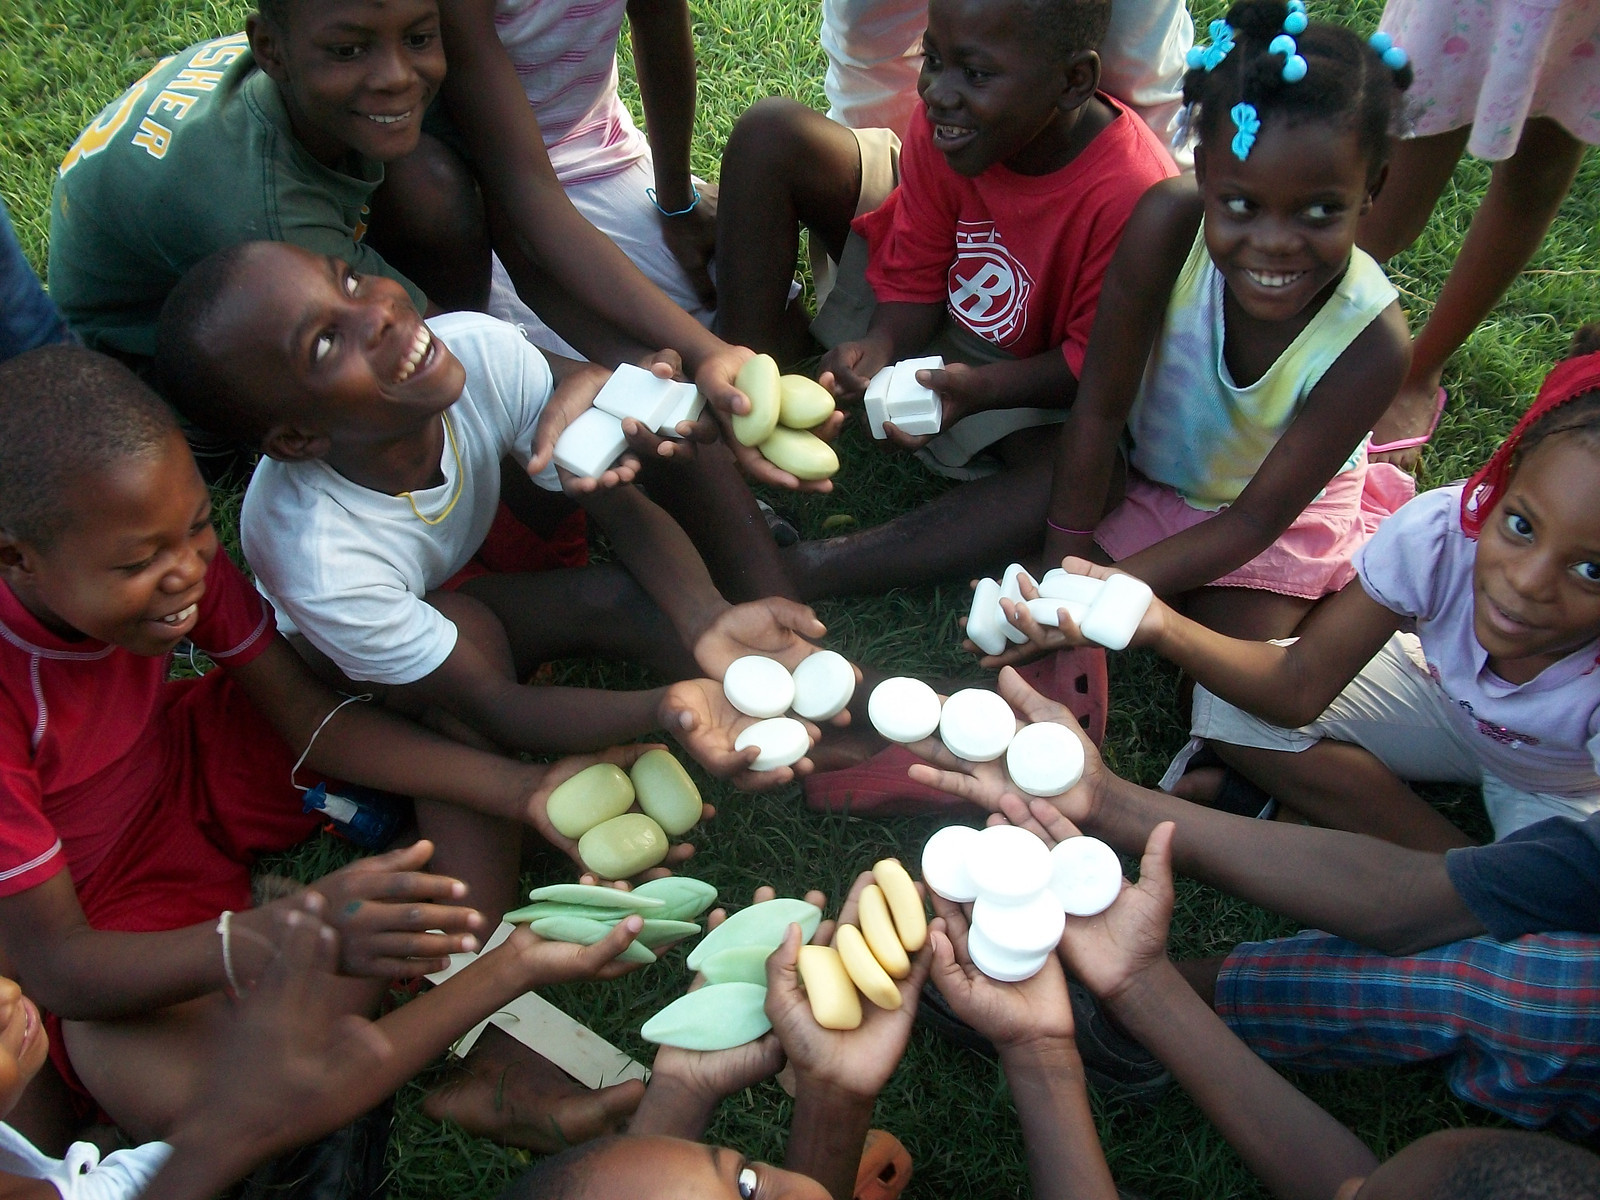 Children received the finished product of recycled soap bars.